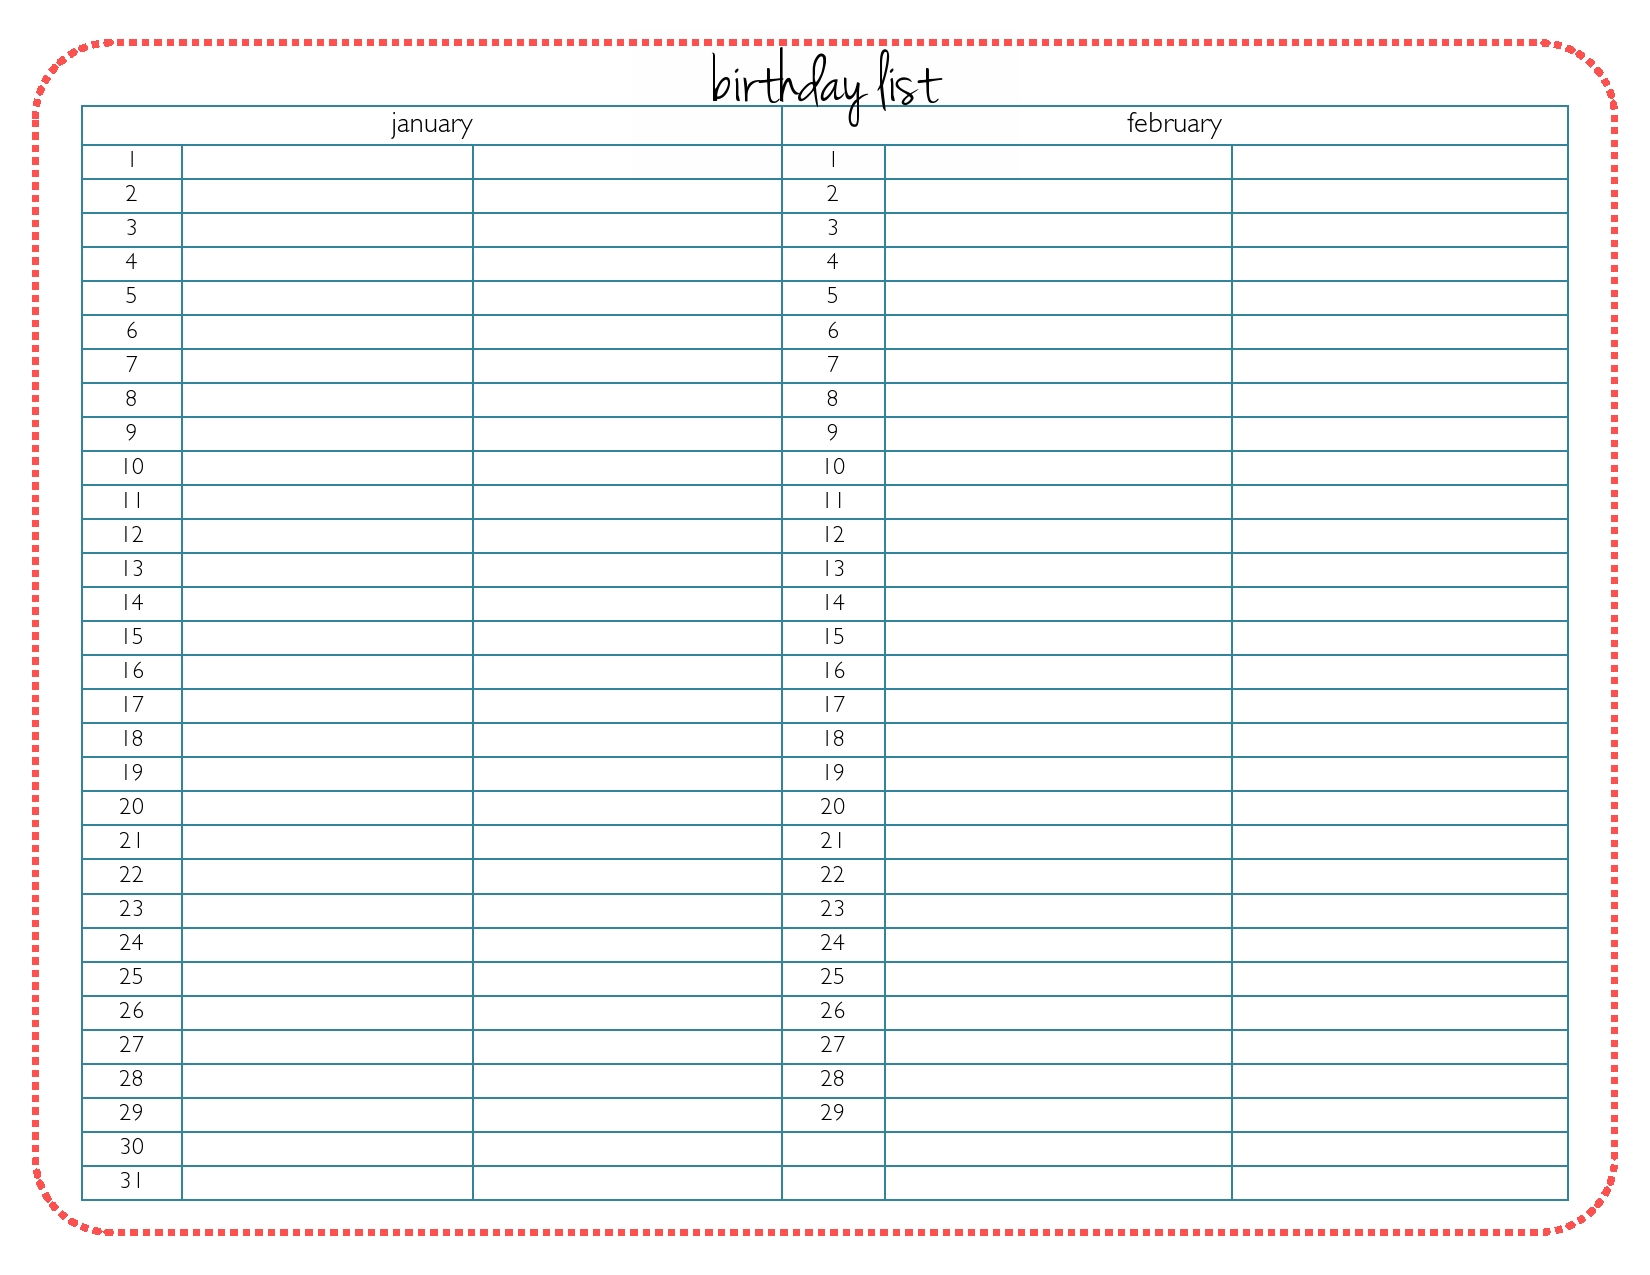 Blank Calendar List : Birthday list printable